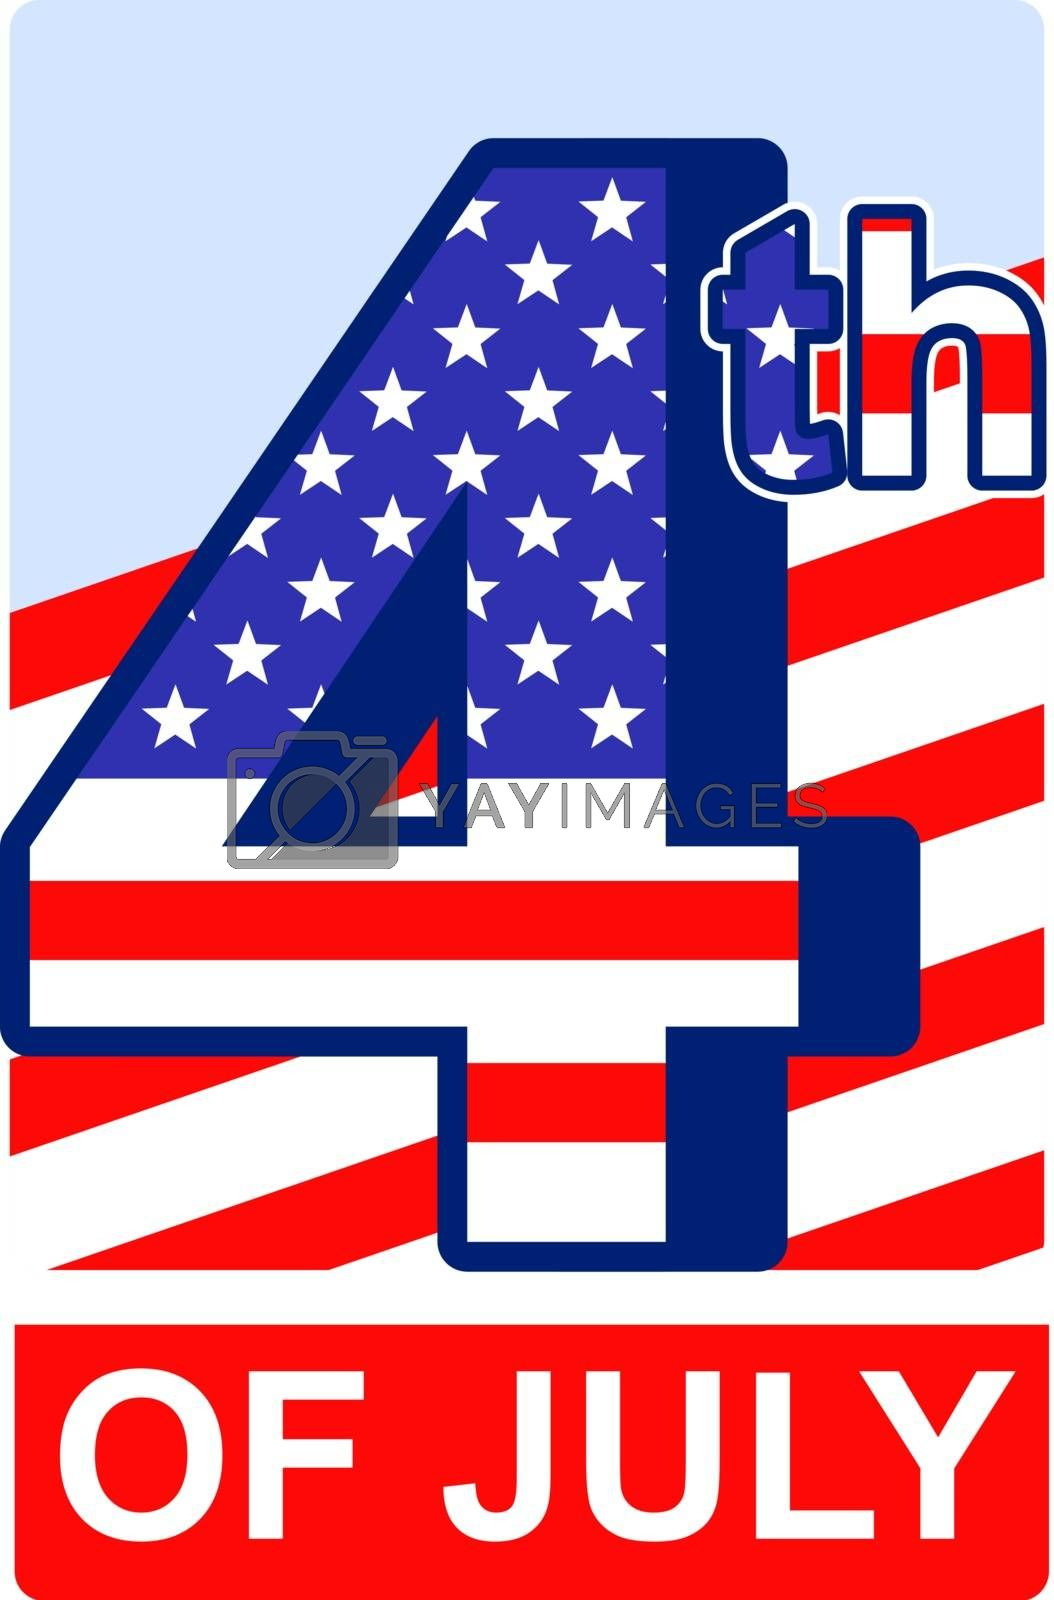 4th of July badge for US independence day